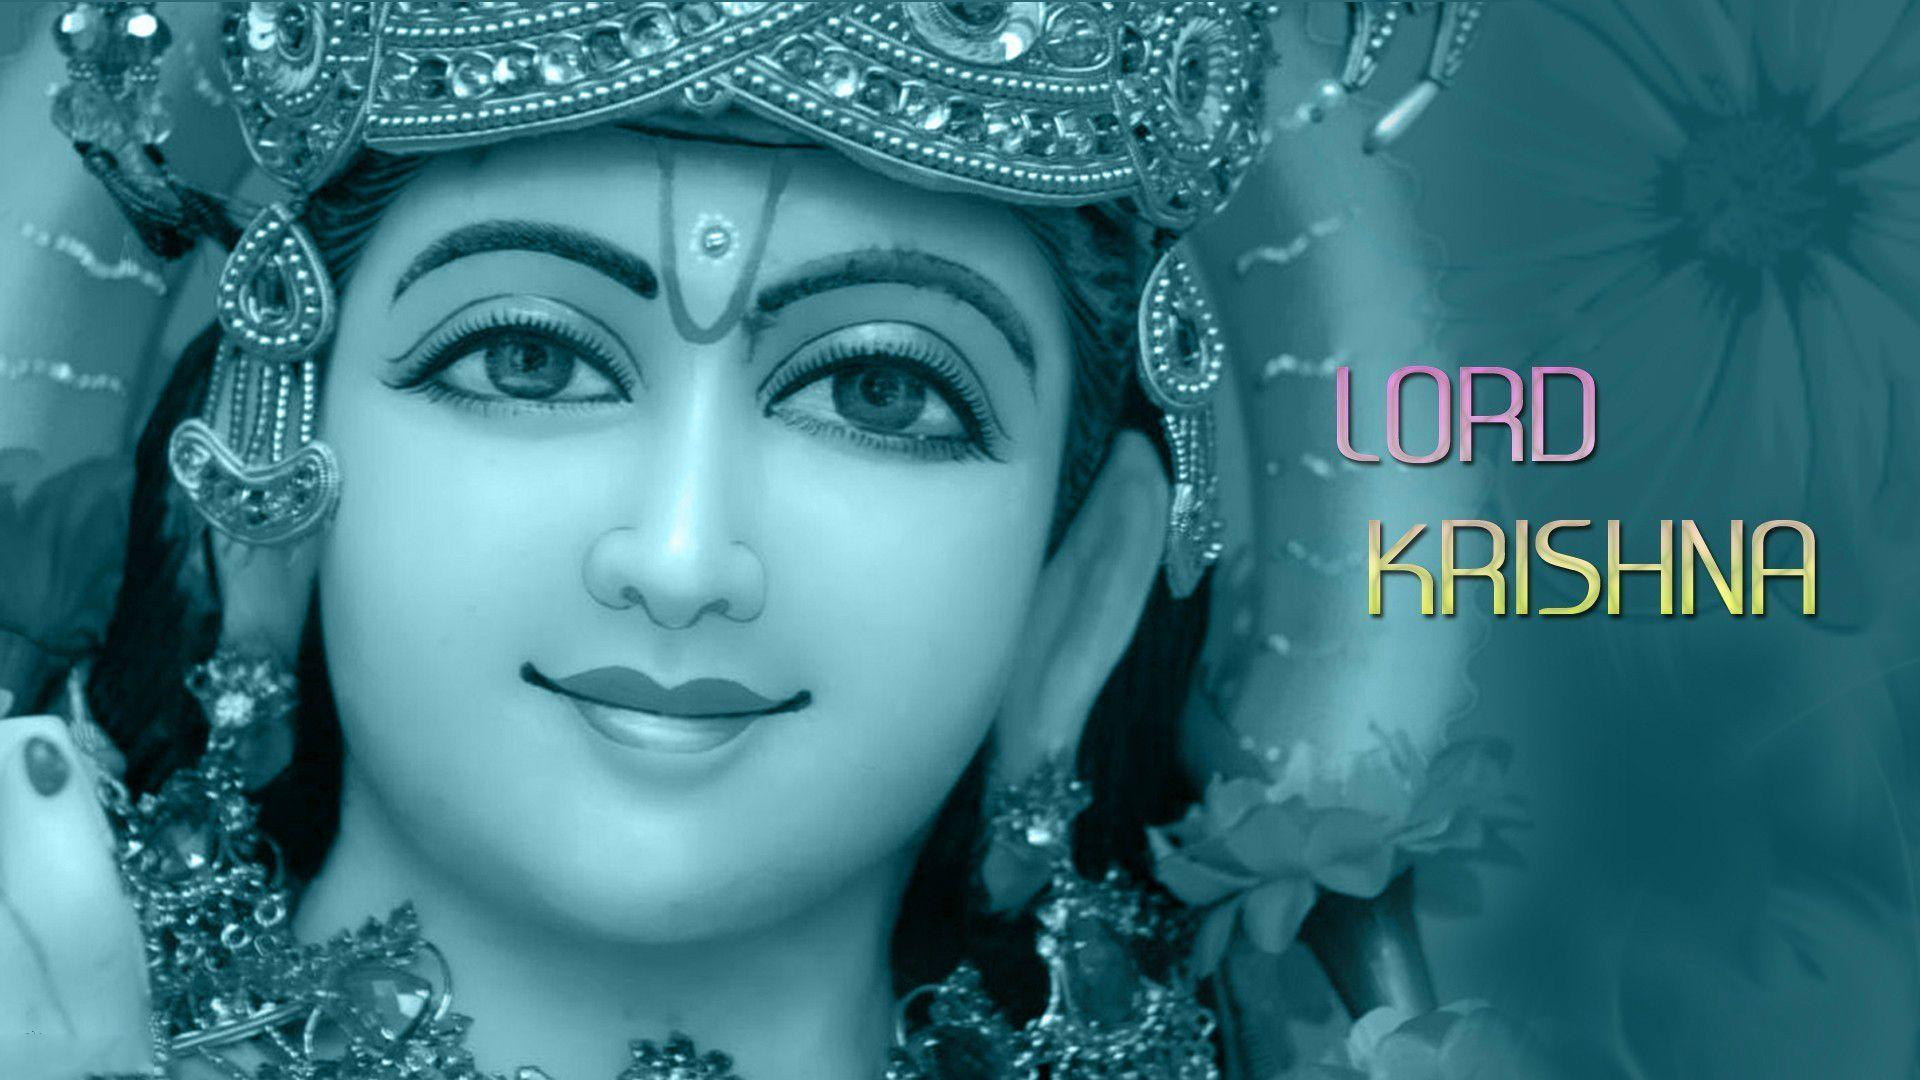 Lord Krishna wallpaper - 1225899